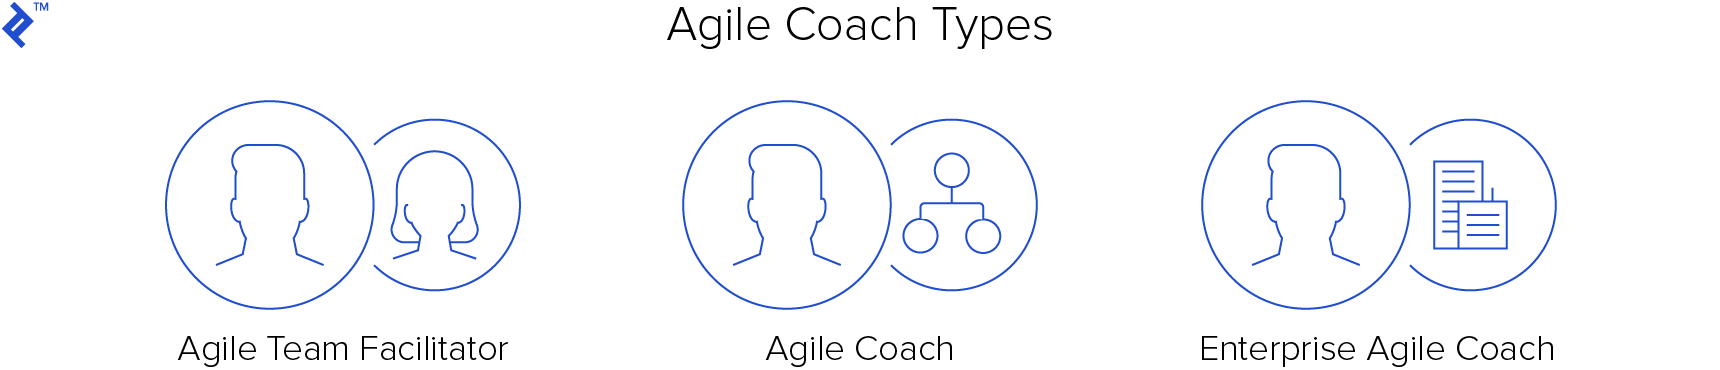 Agile Coach types